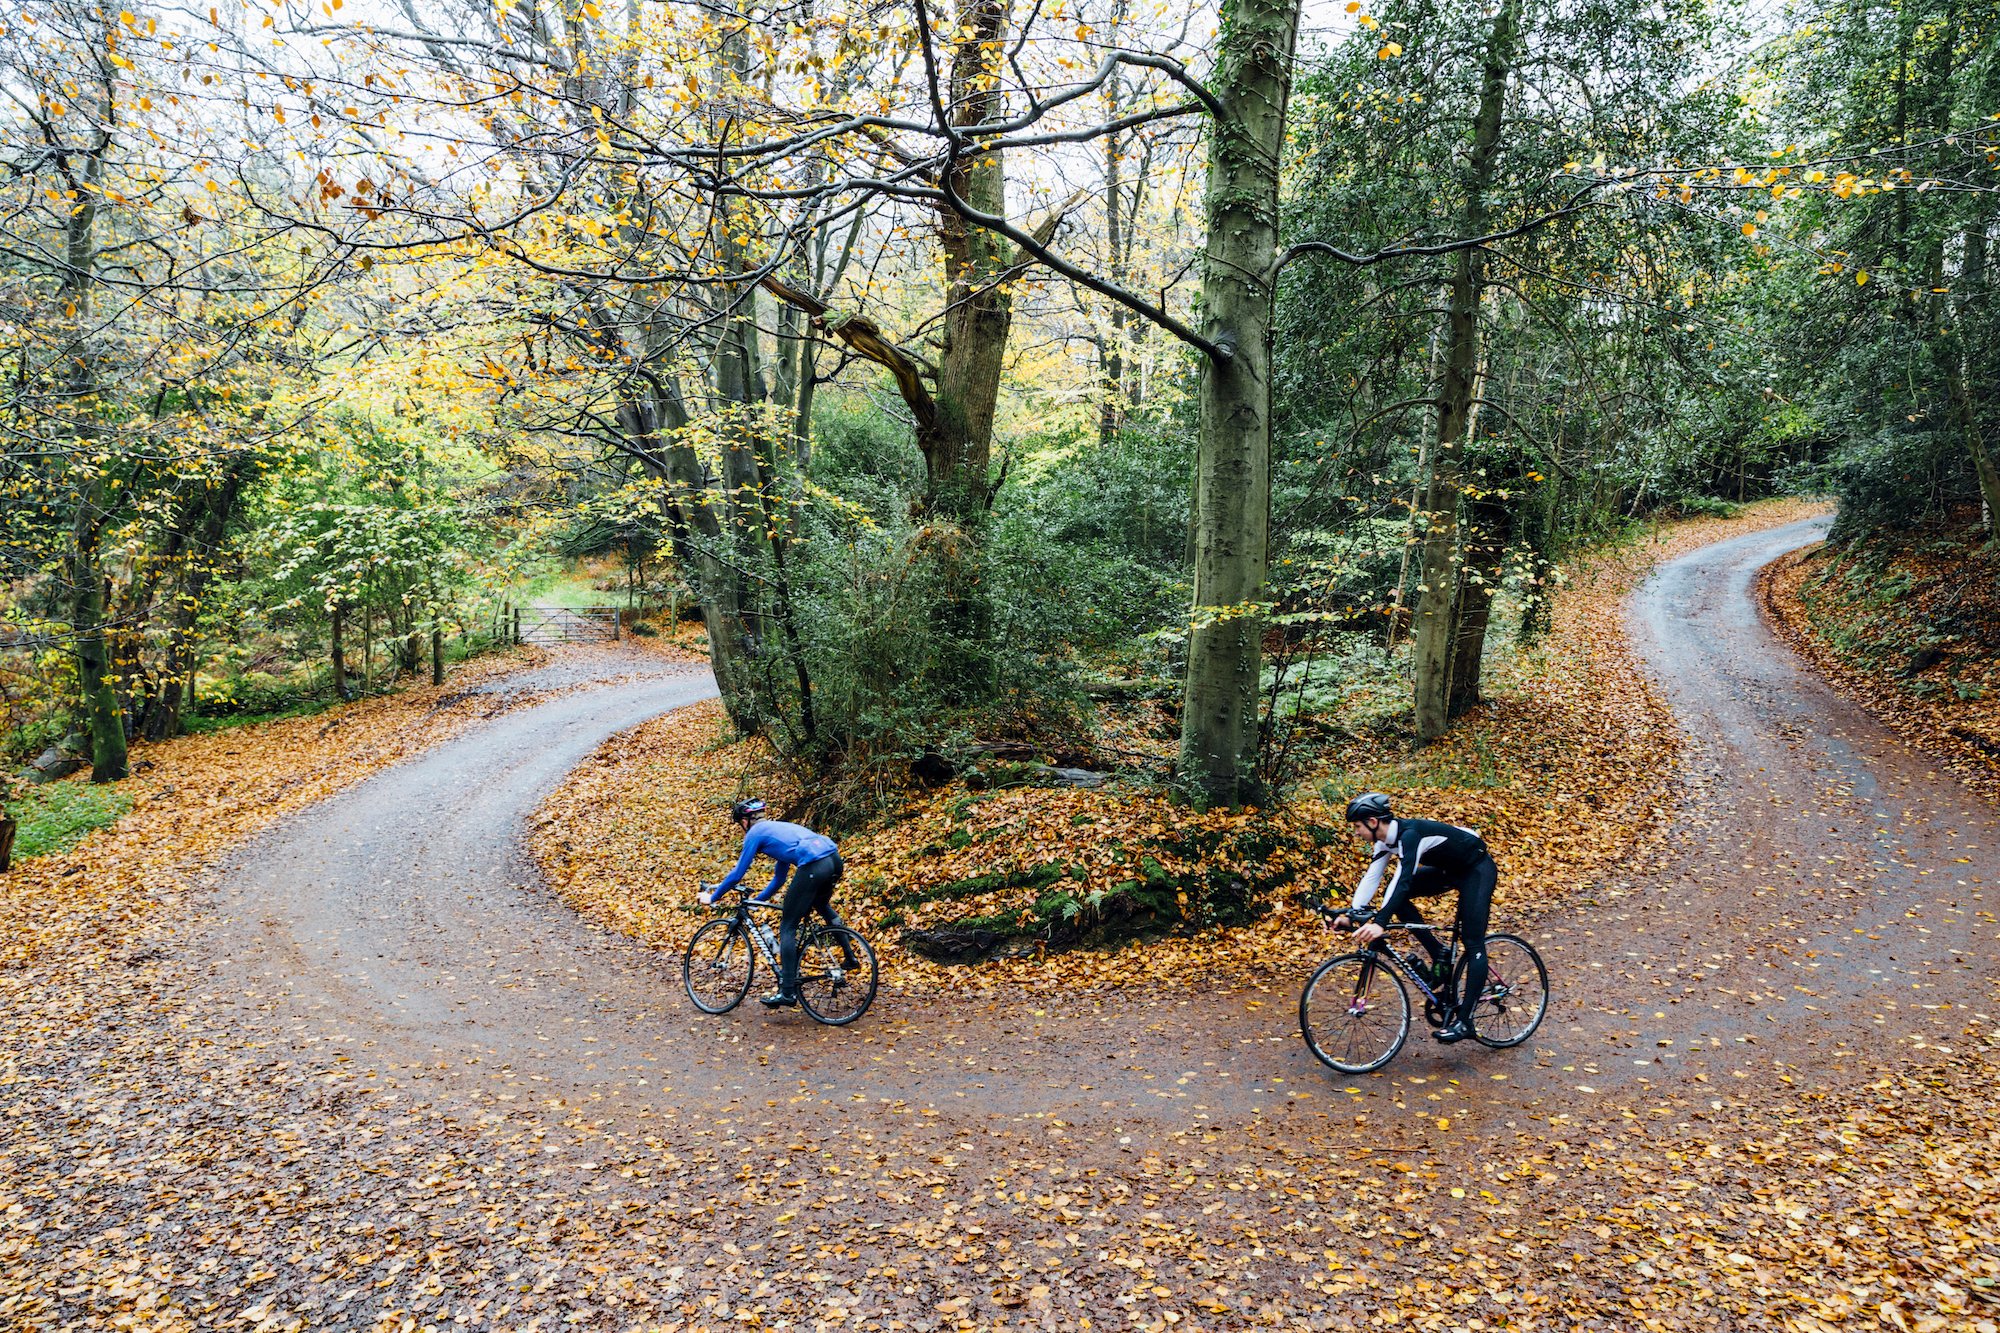 Best shoulder season cycling gear: what to wear in the fall and spring - Cycling Weekly